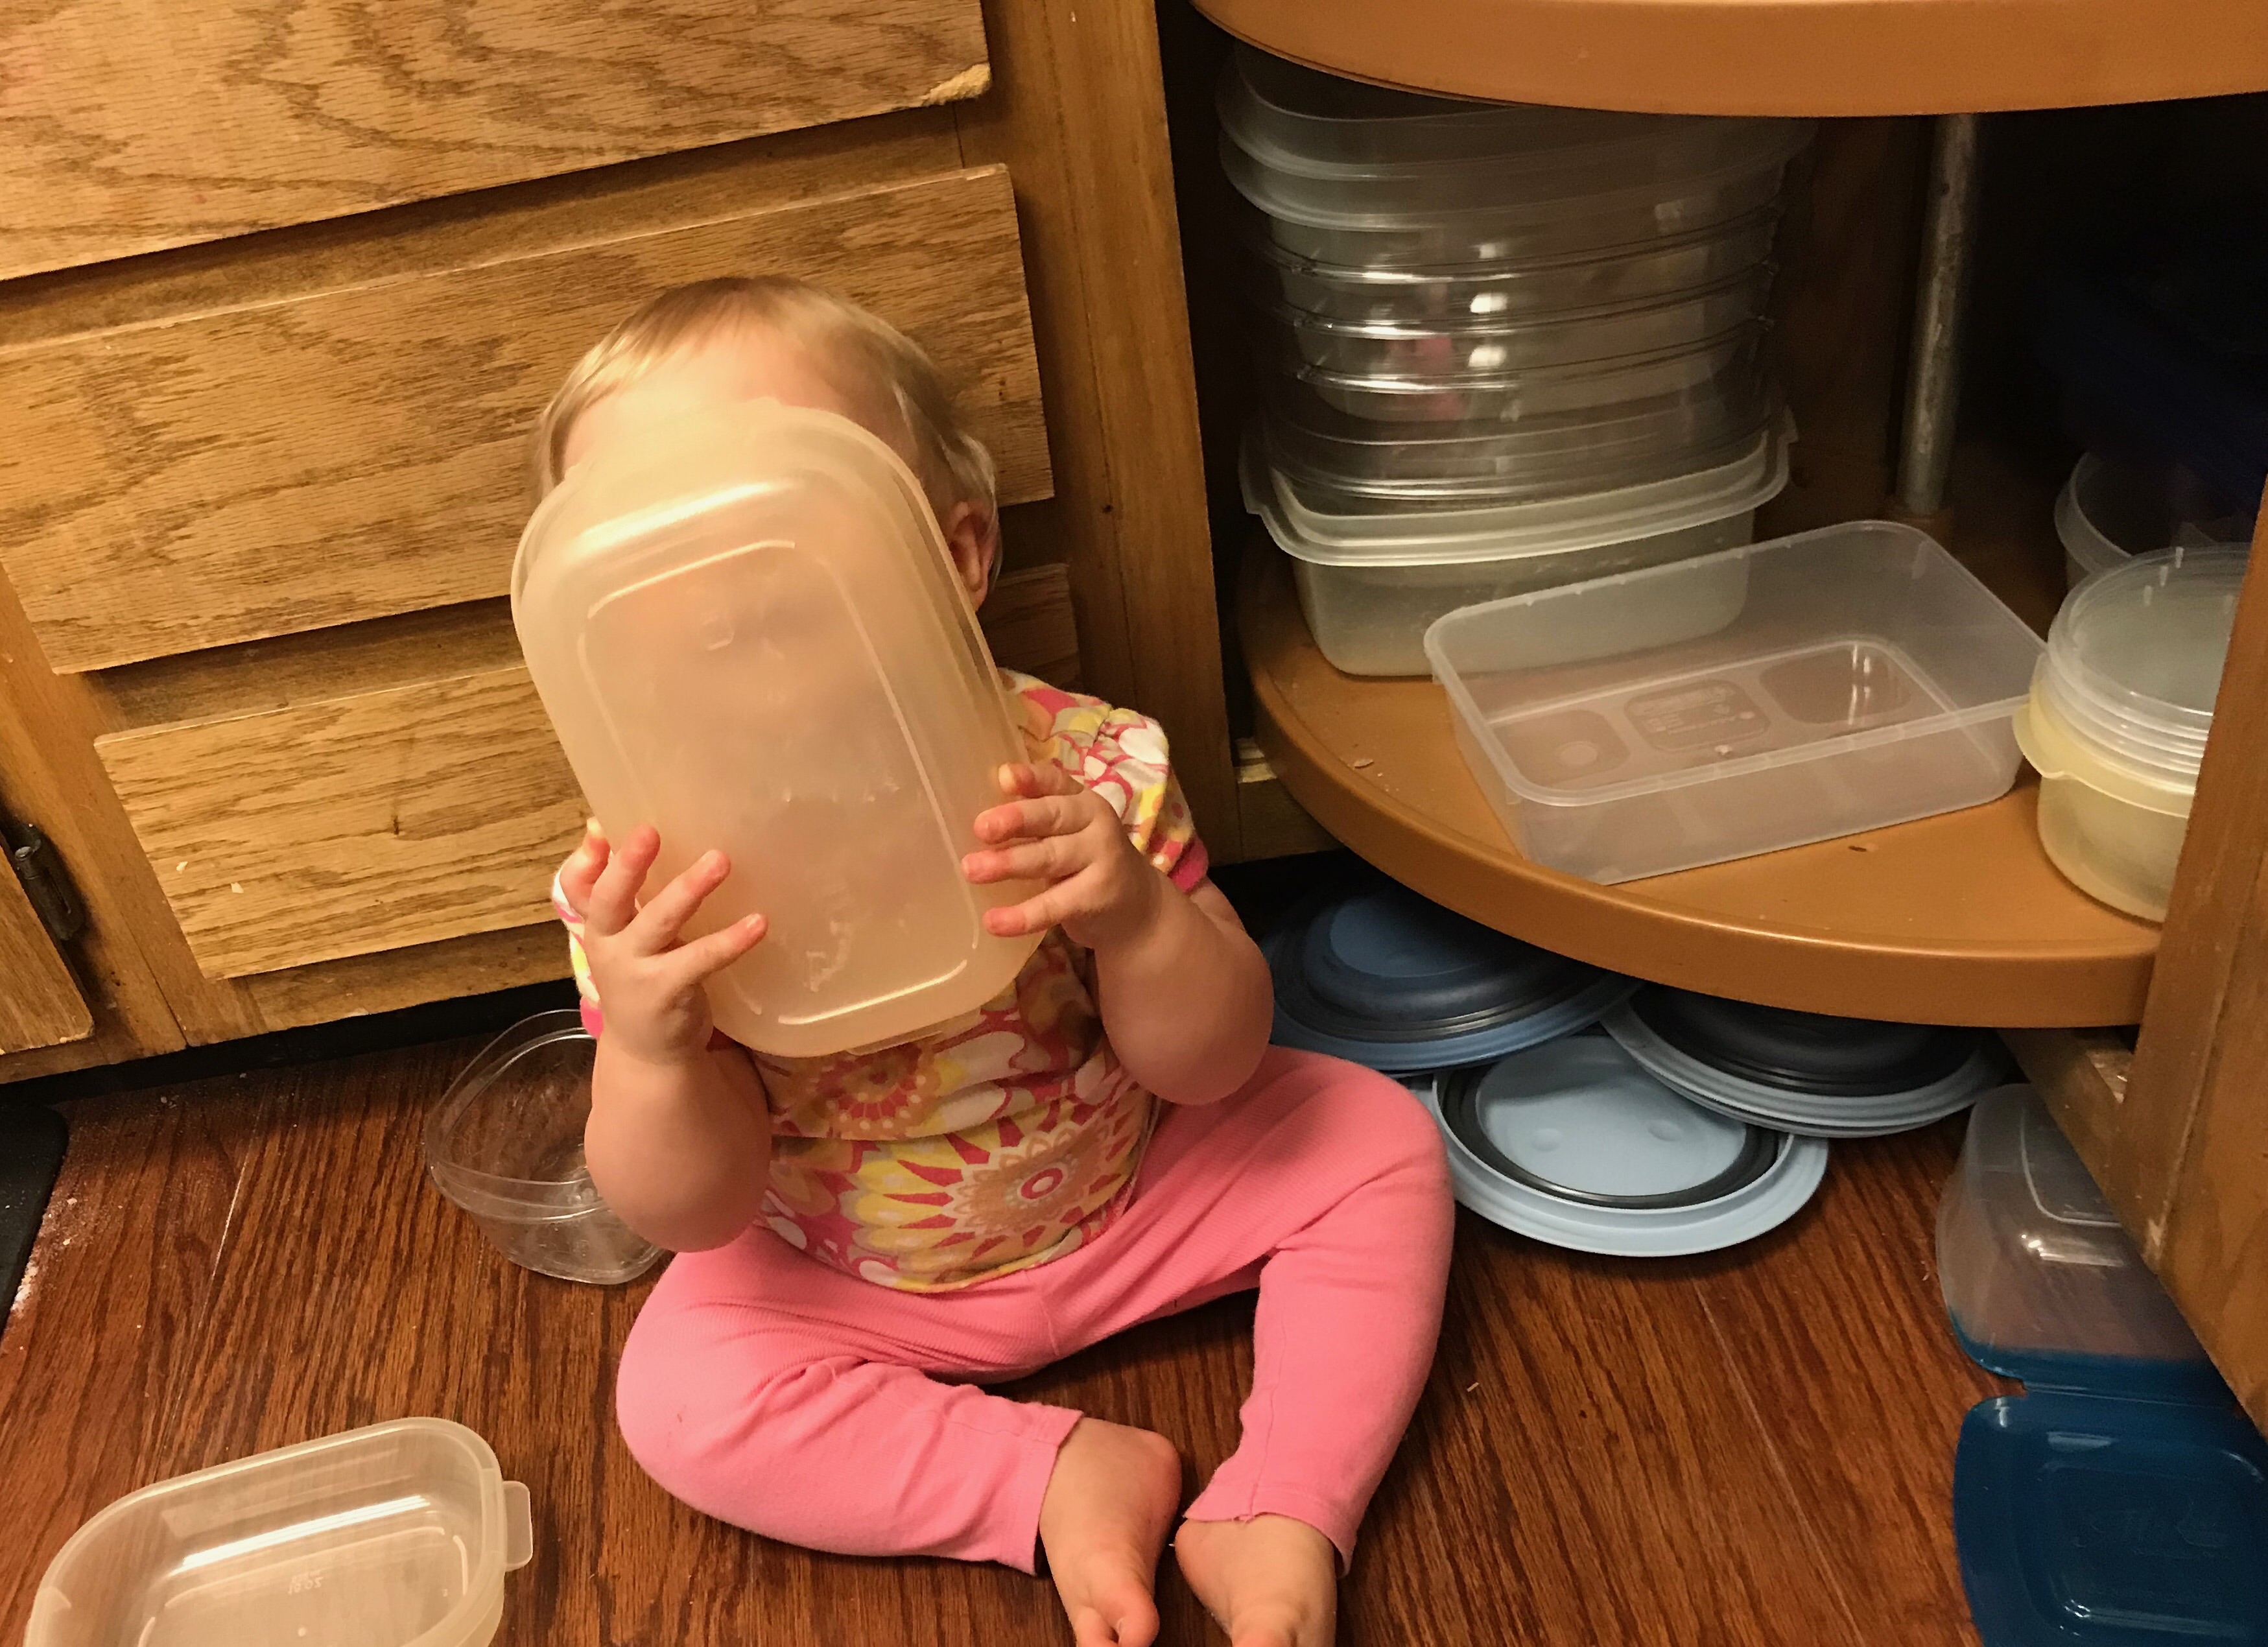 favorite baby proofing products from munchkin – Stacy's own munchkin playing with plastic containers